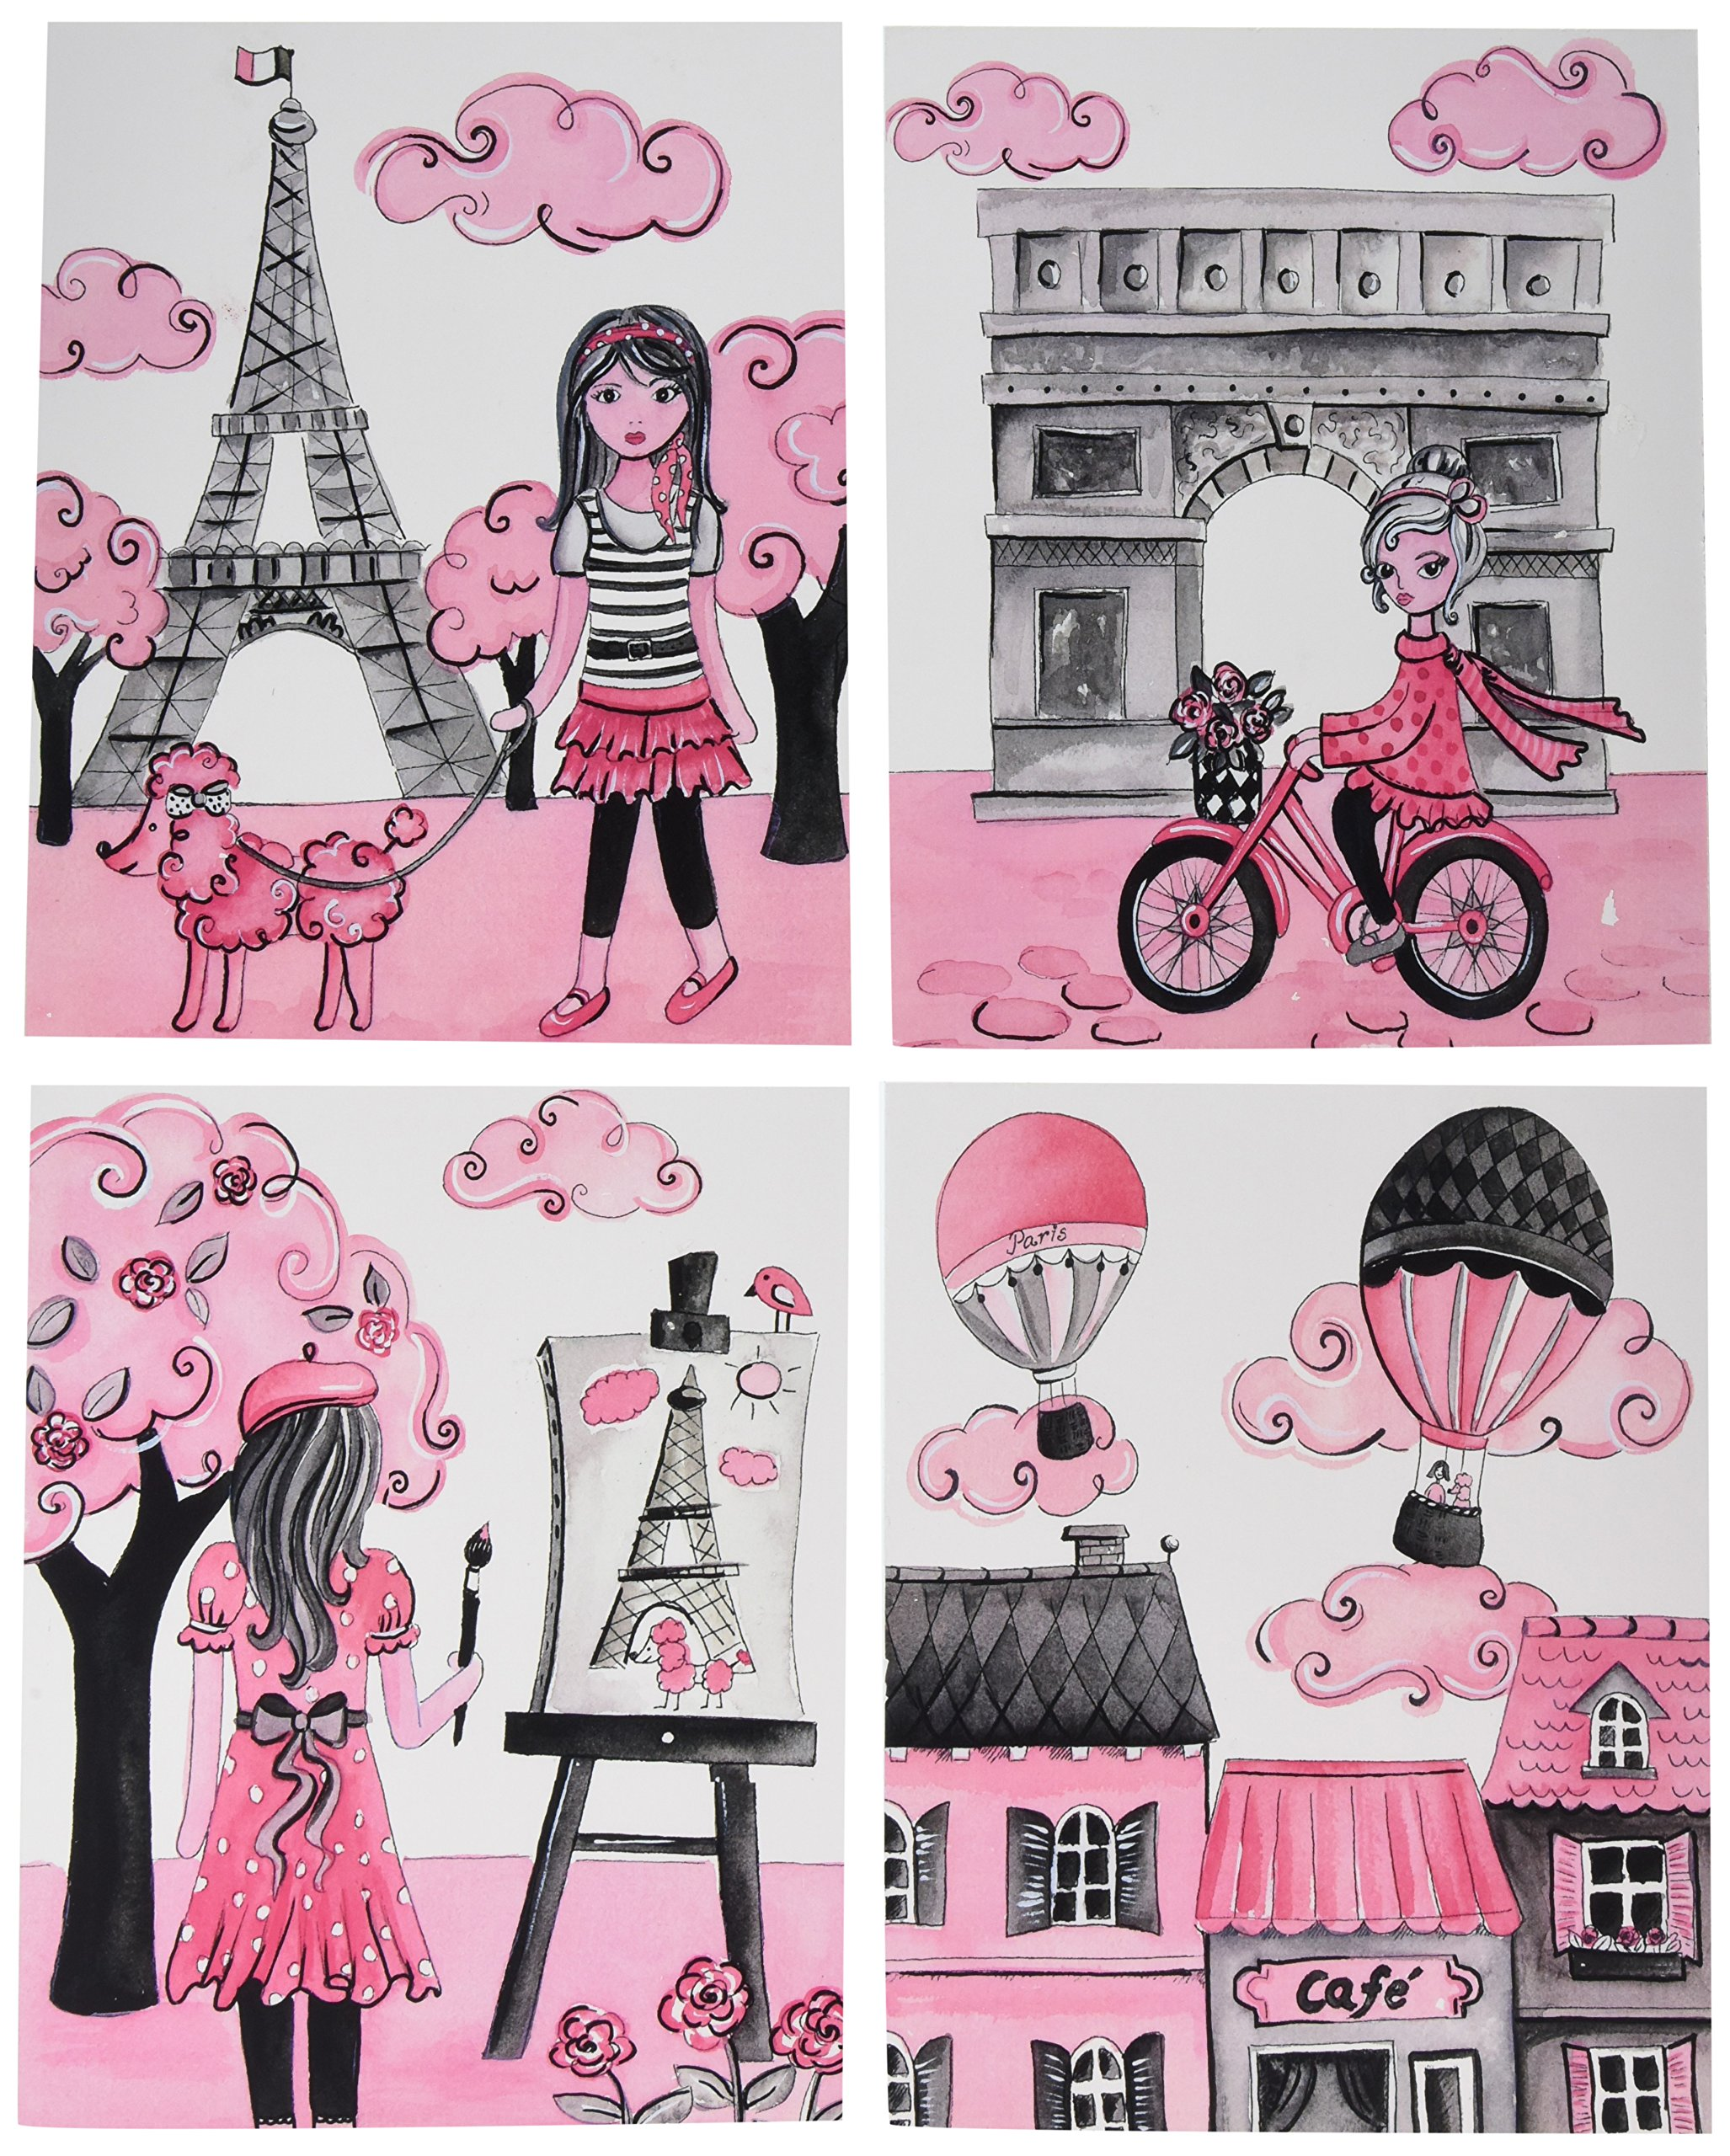 The Kids Room By Stupell 4 Piece Quadtych Wall Plaque Set, A Girl In Paris, Proudly Made in USA